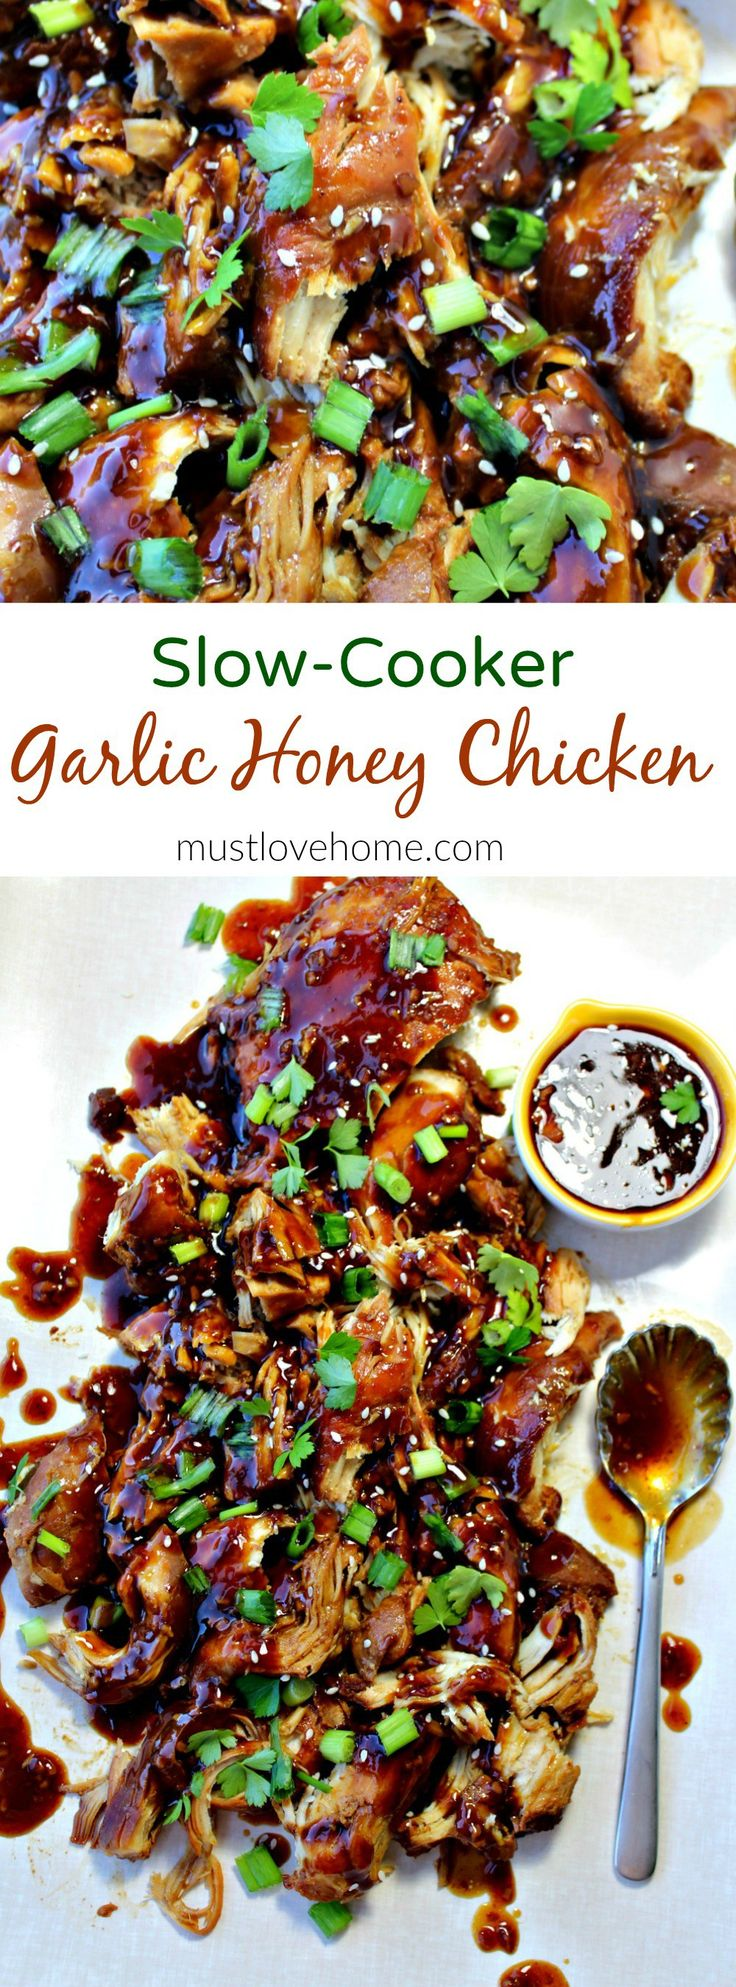 This Slow Cooker Garlic Honey Chicken is tender, slow cooked chicken breasts covered in a sweet, spicy garlic sauce that will have everyone asking for seconds!